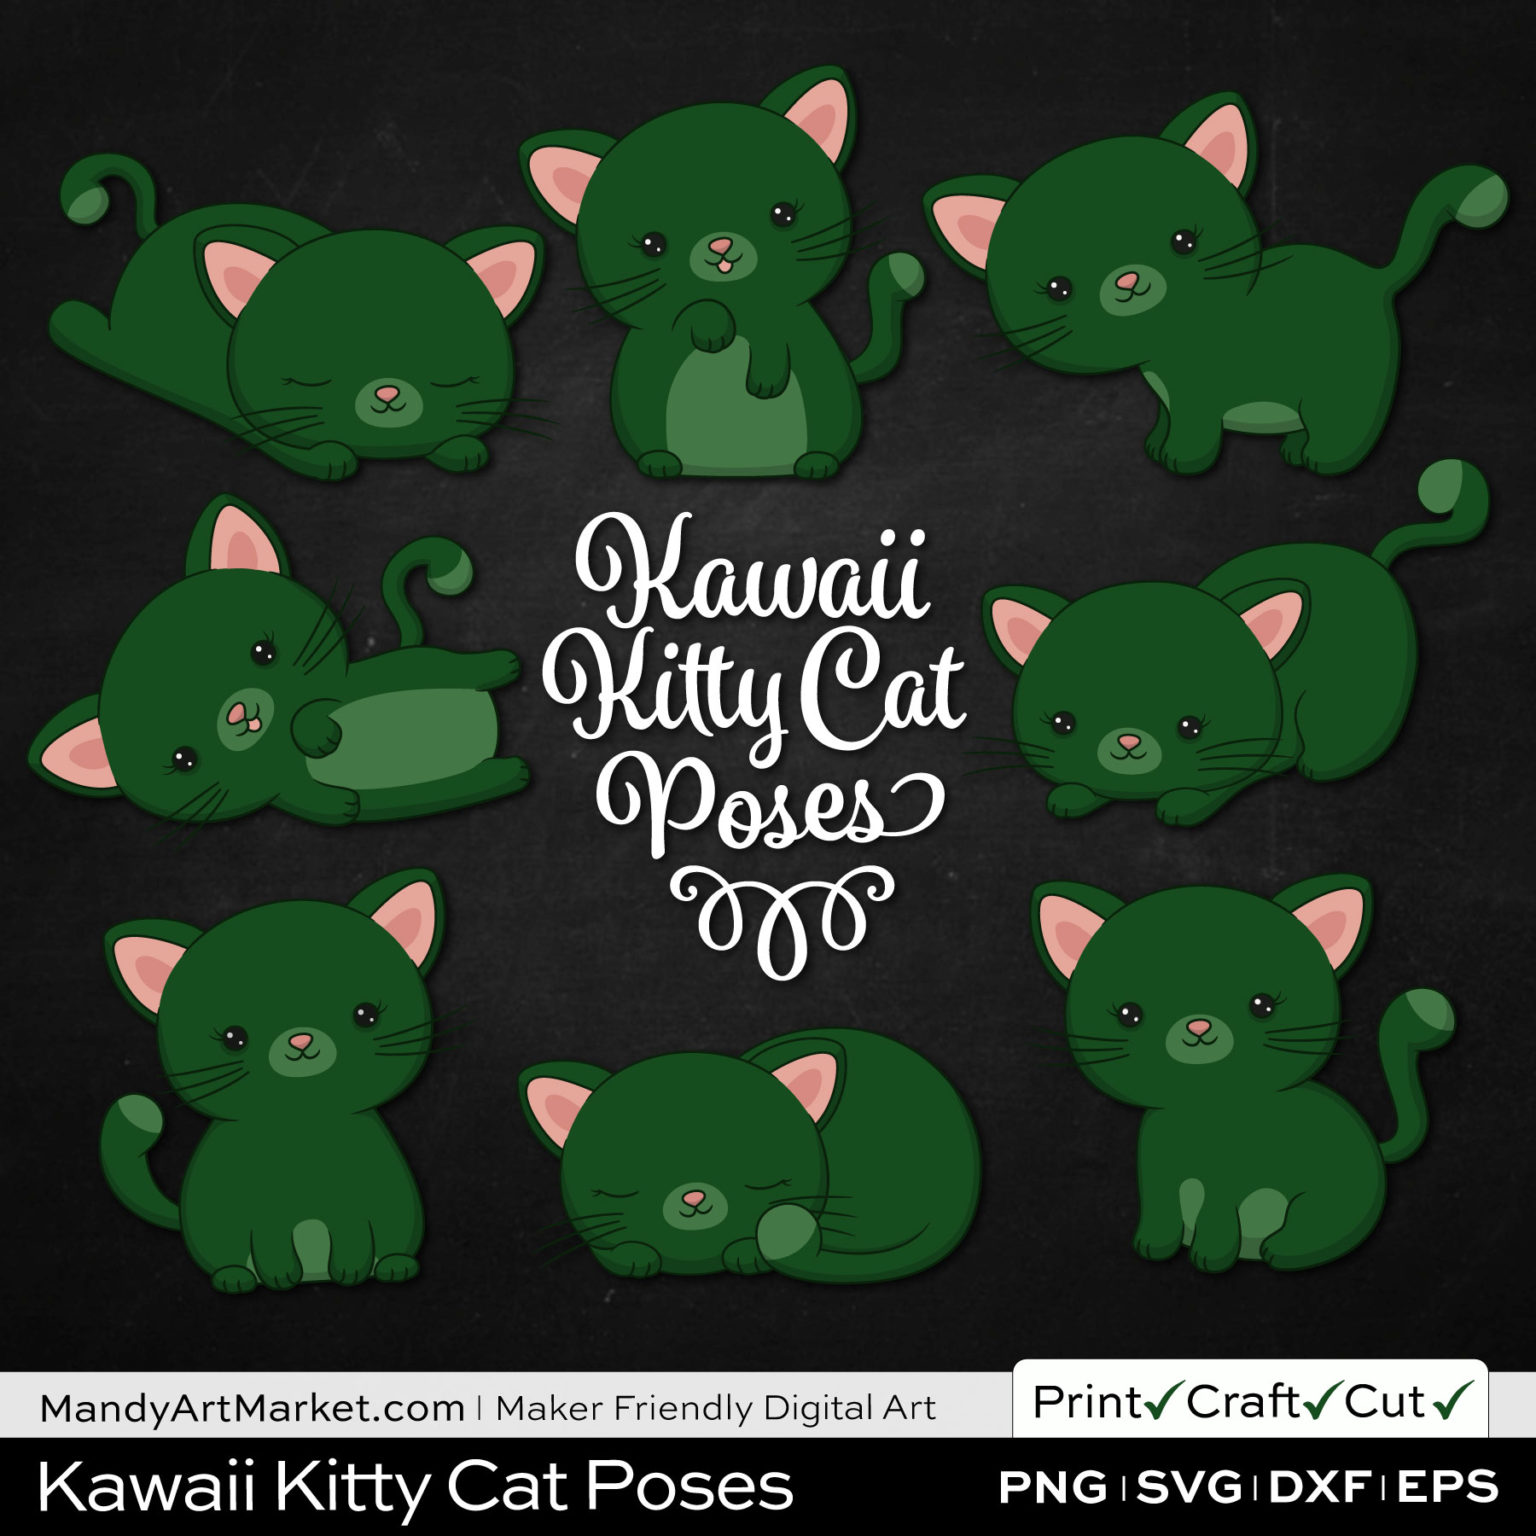 Forest Green Kawaii Kitty Cat Poses Clipart on Black Background